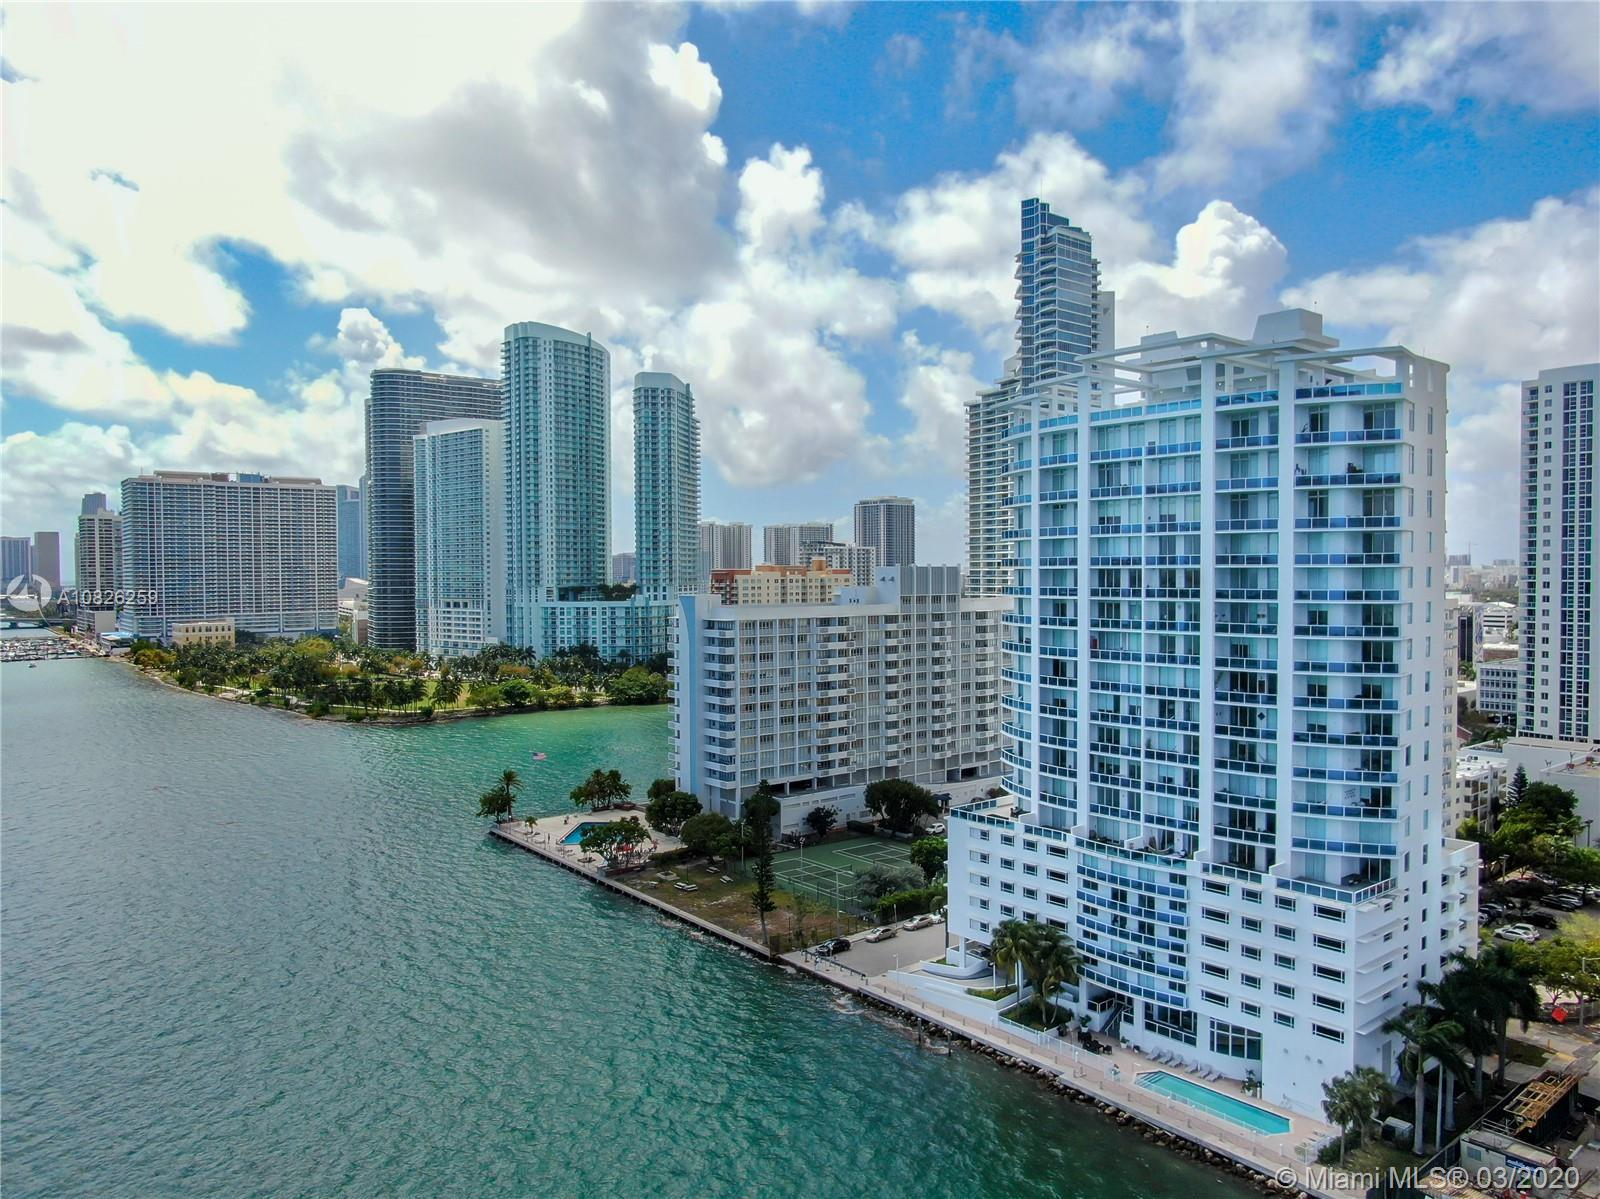 LOCATION! Beautiful Boutique Waterfront Building in Edgewater. Stepping into this lovely condo feels